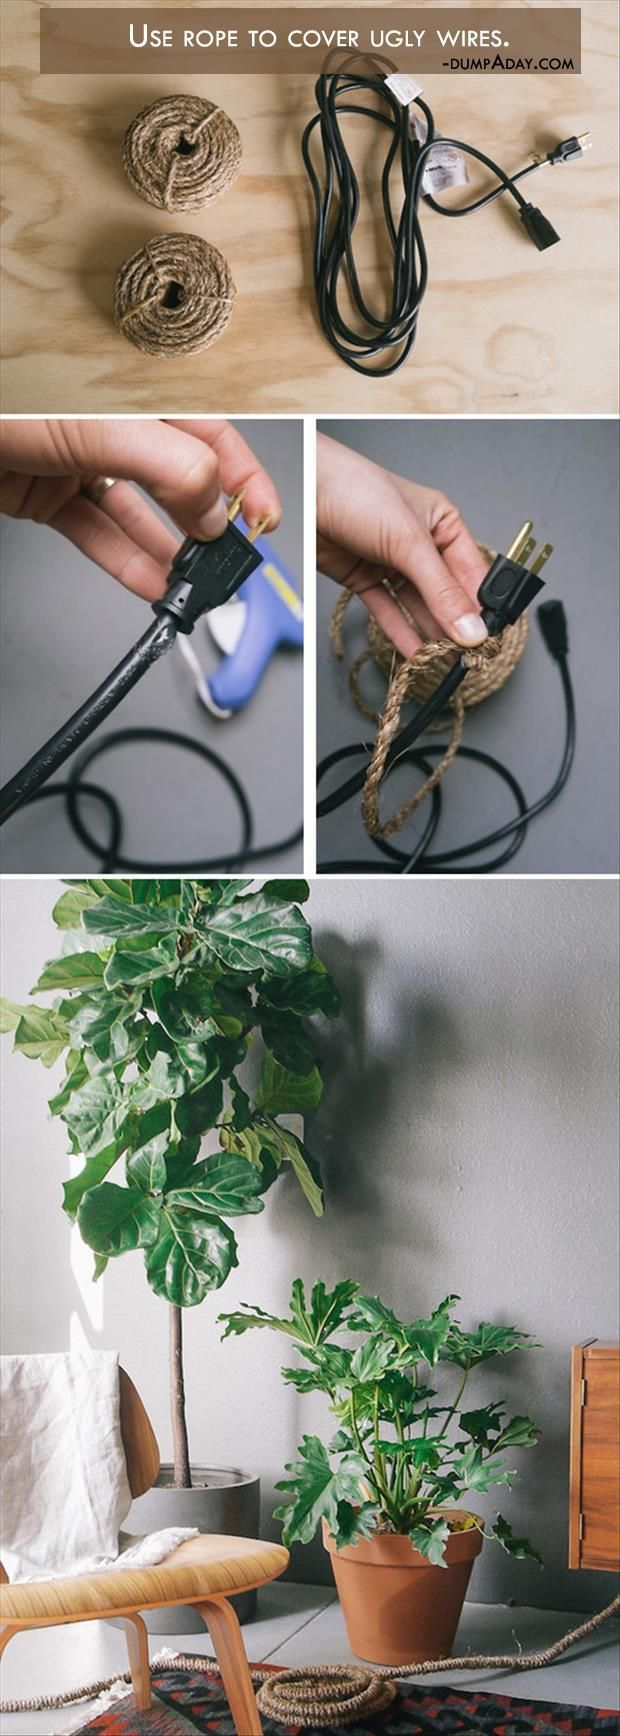 Pin By Patti Williams On Macrame In 2018 Pinterest Diy Home And Electrical Wiring Tips Electronics Cord Cover Twine Decoration Eyewear